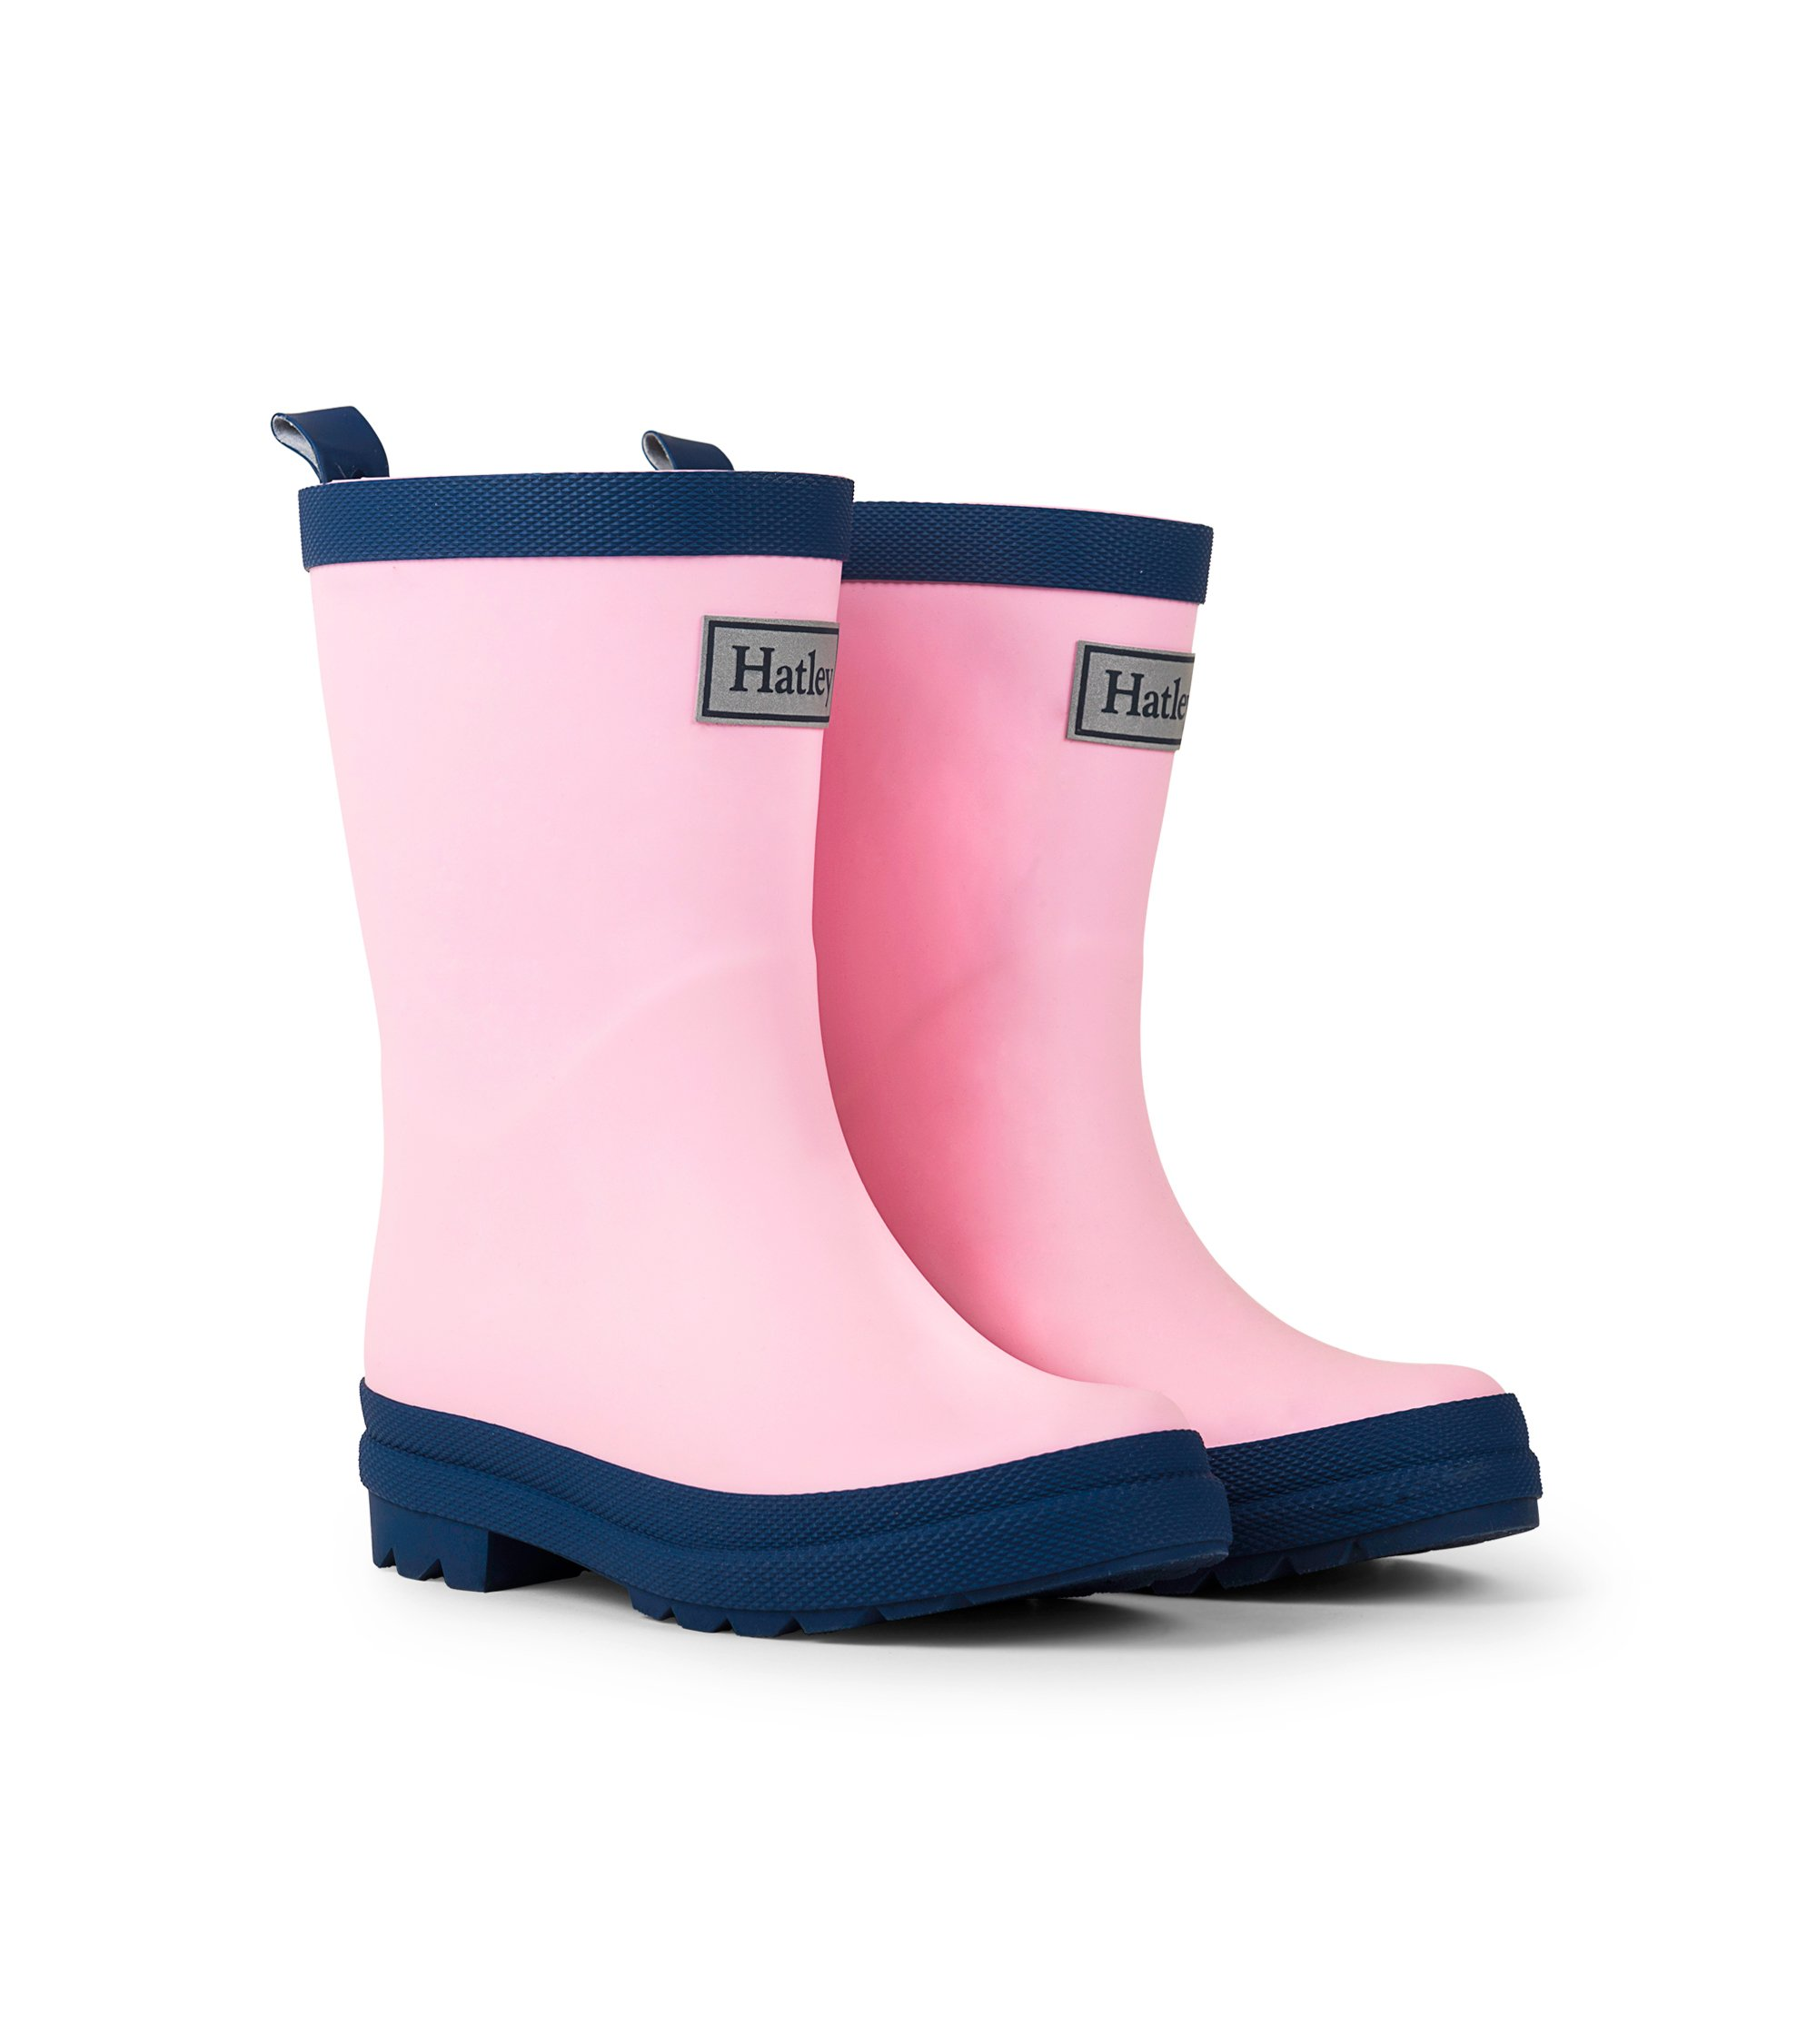 Hatley Classic Rain Boots, Pink and Navy, 13 M US Little Kid